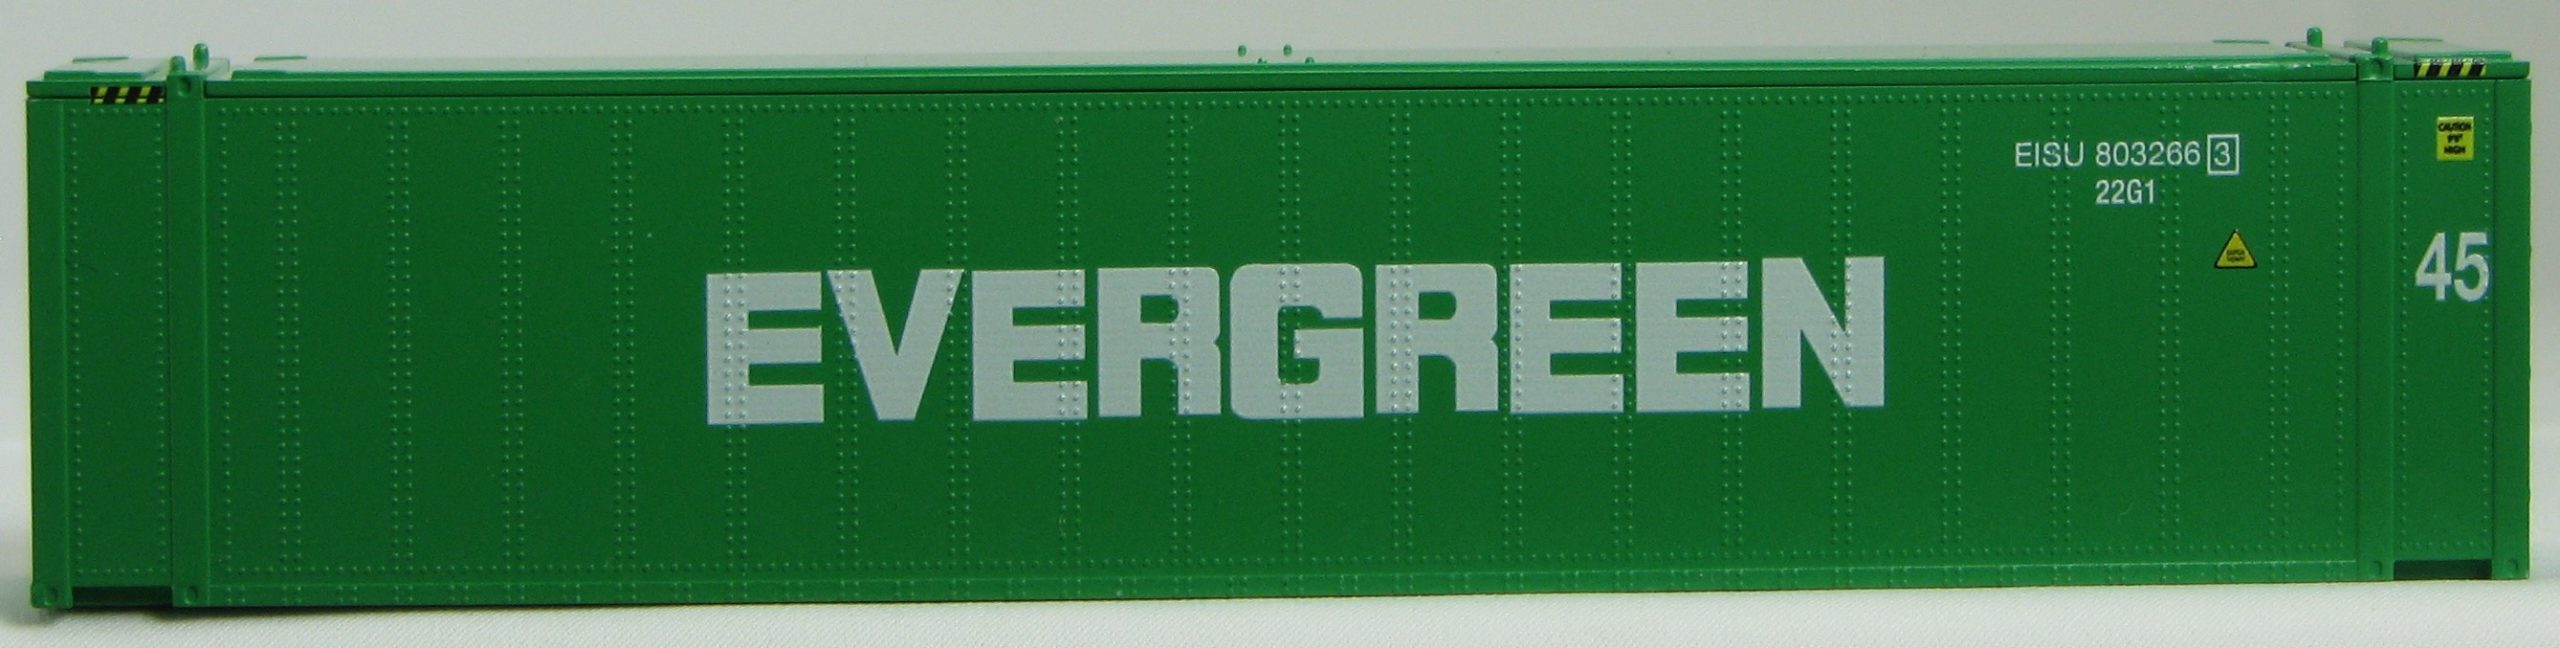 HO 45 Ft Std Container  EVERGREEN Green 2PK (01)